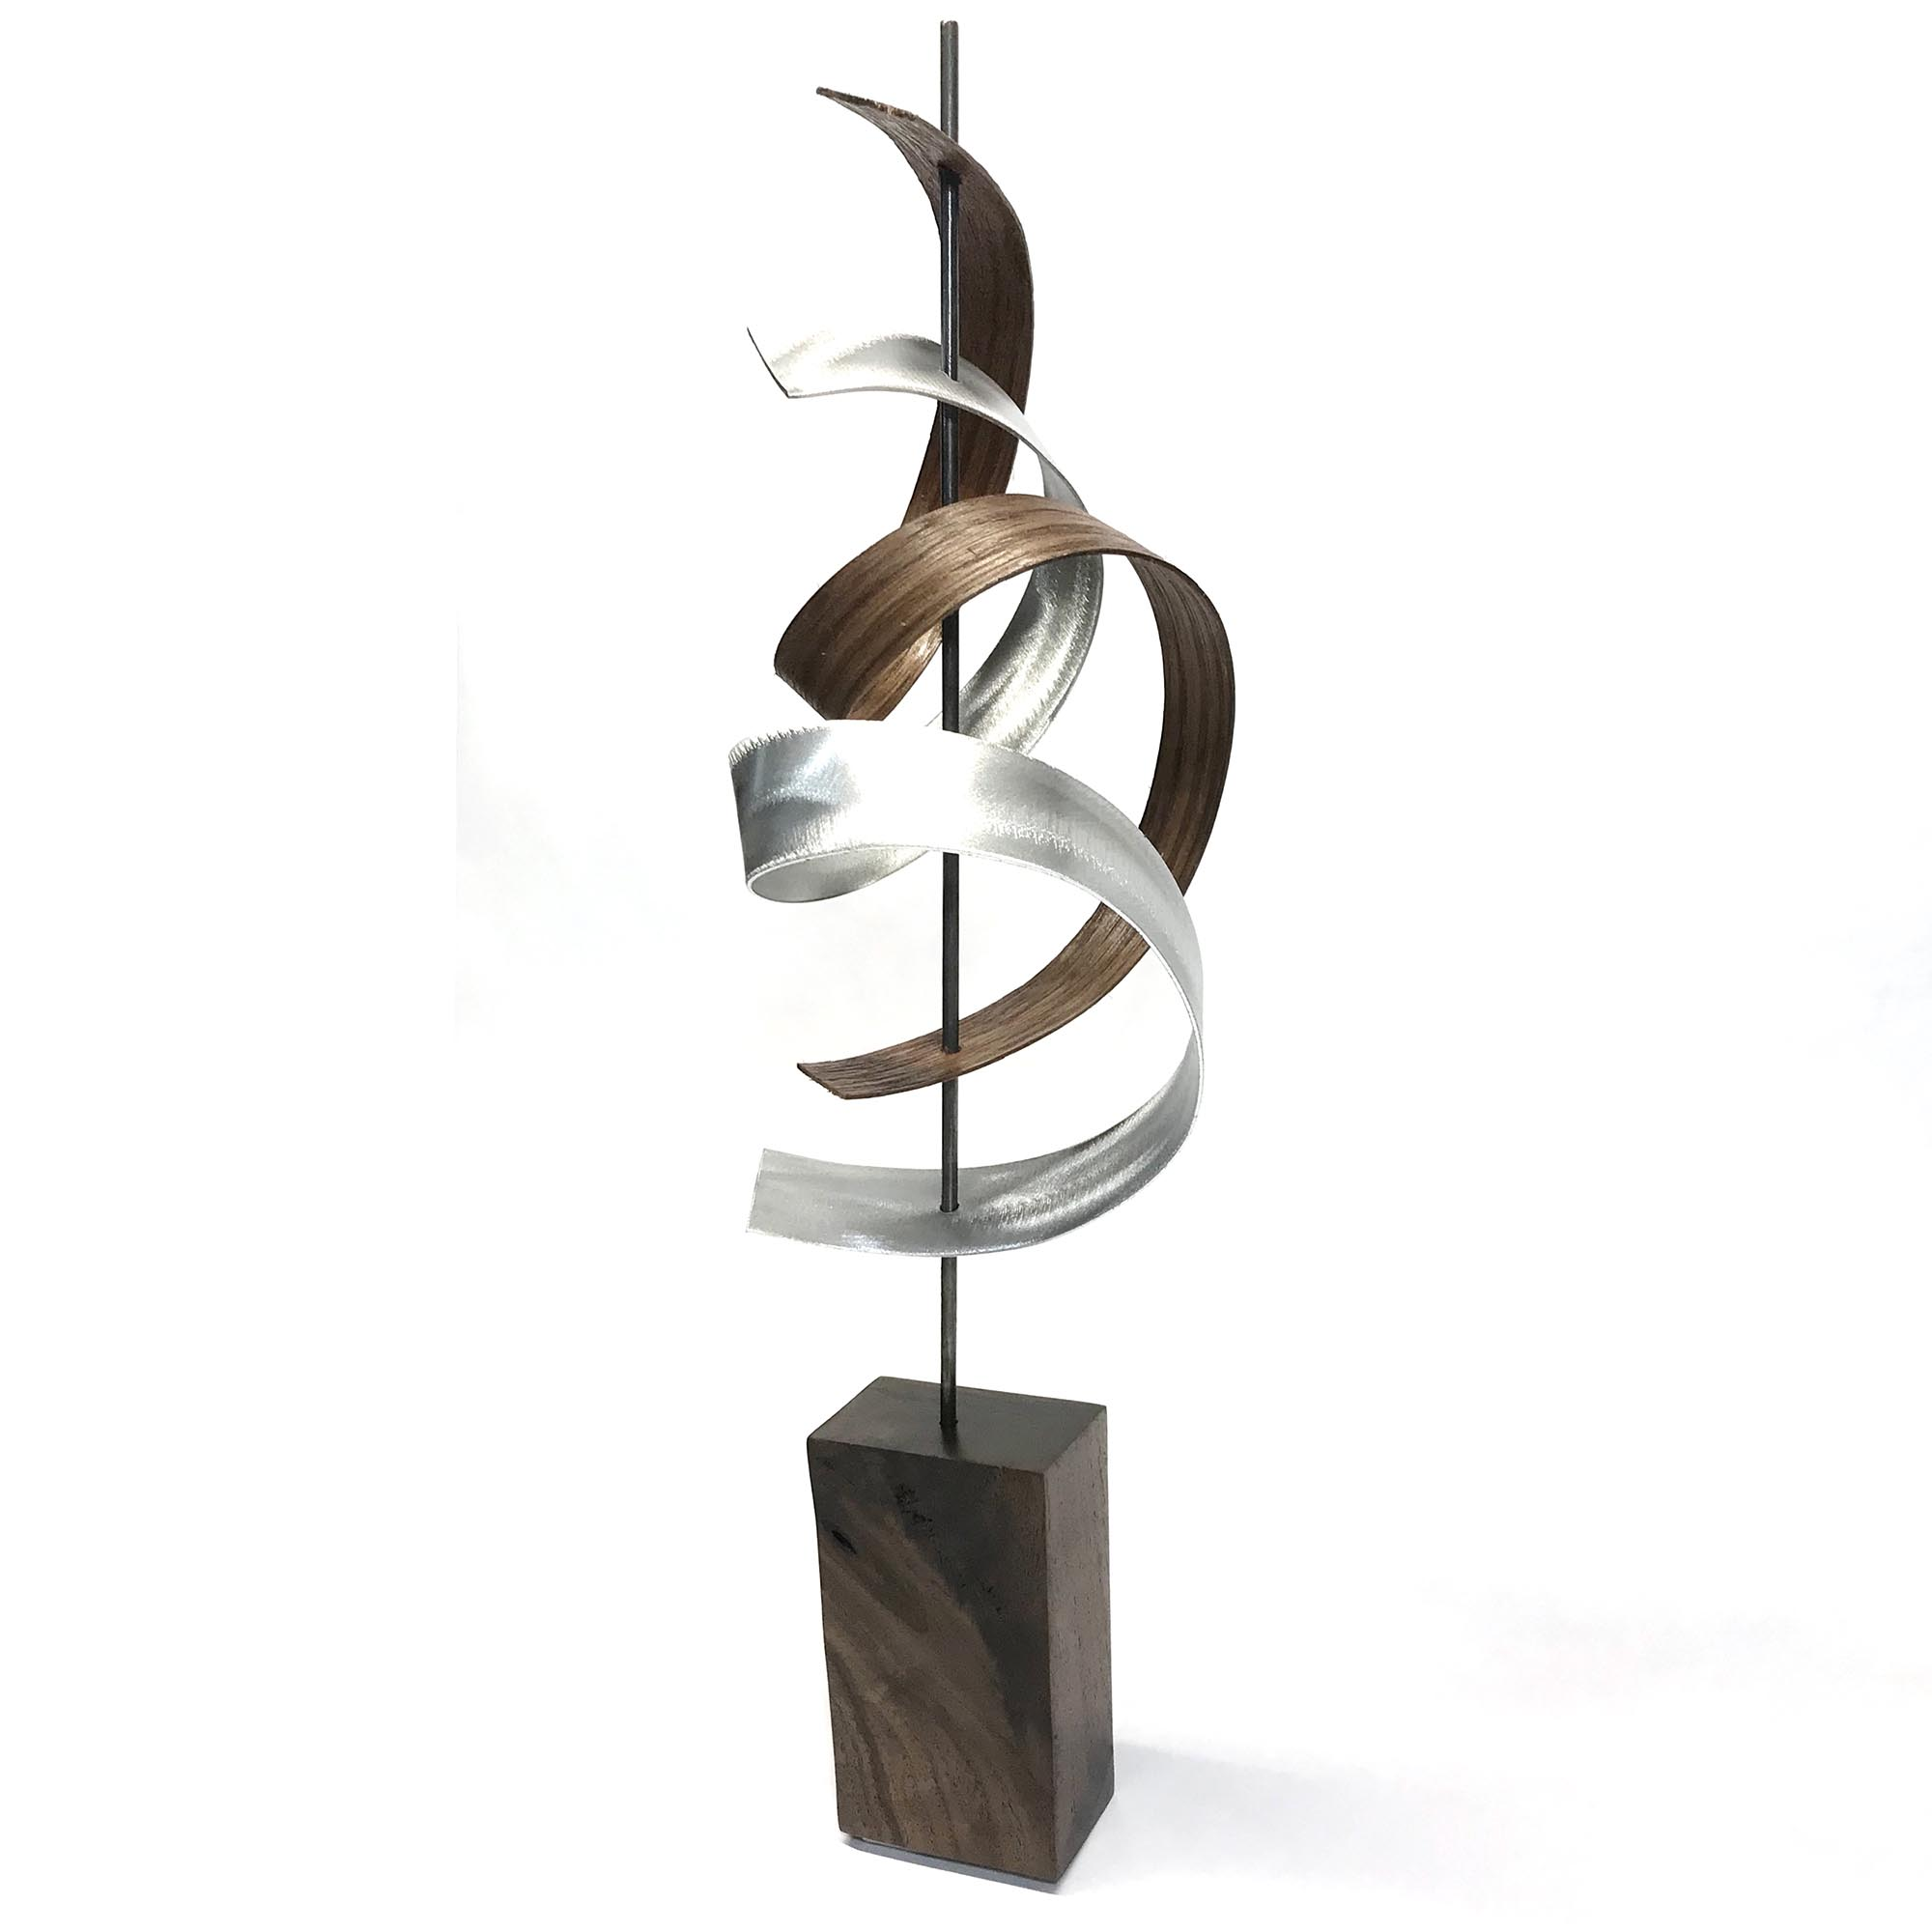 Waltz by Jackson Wright - Modern Wood Sculpture, Mid-Century Home Decor - Image 3